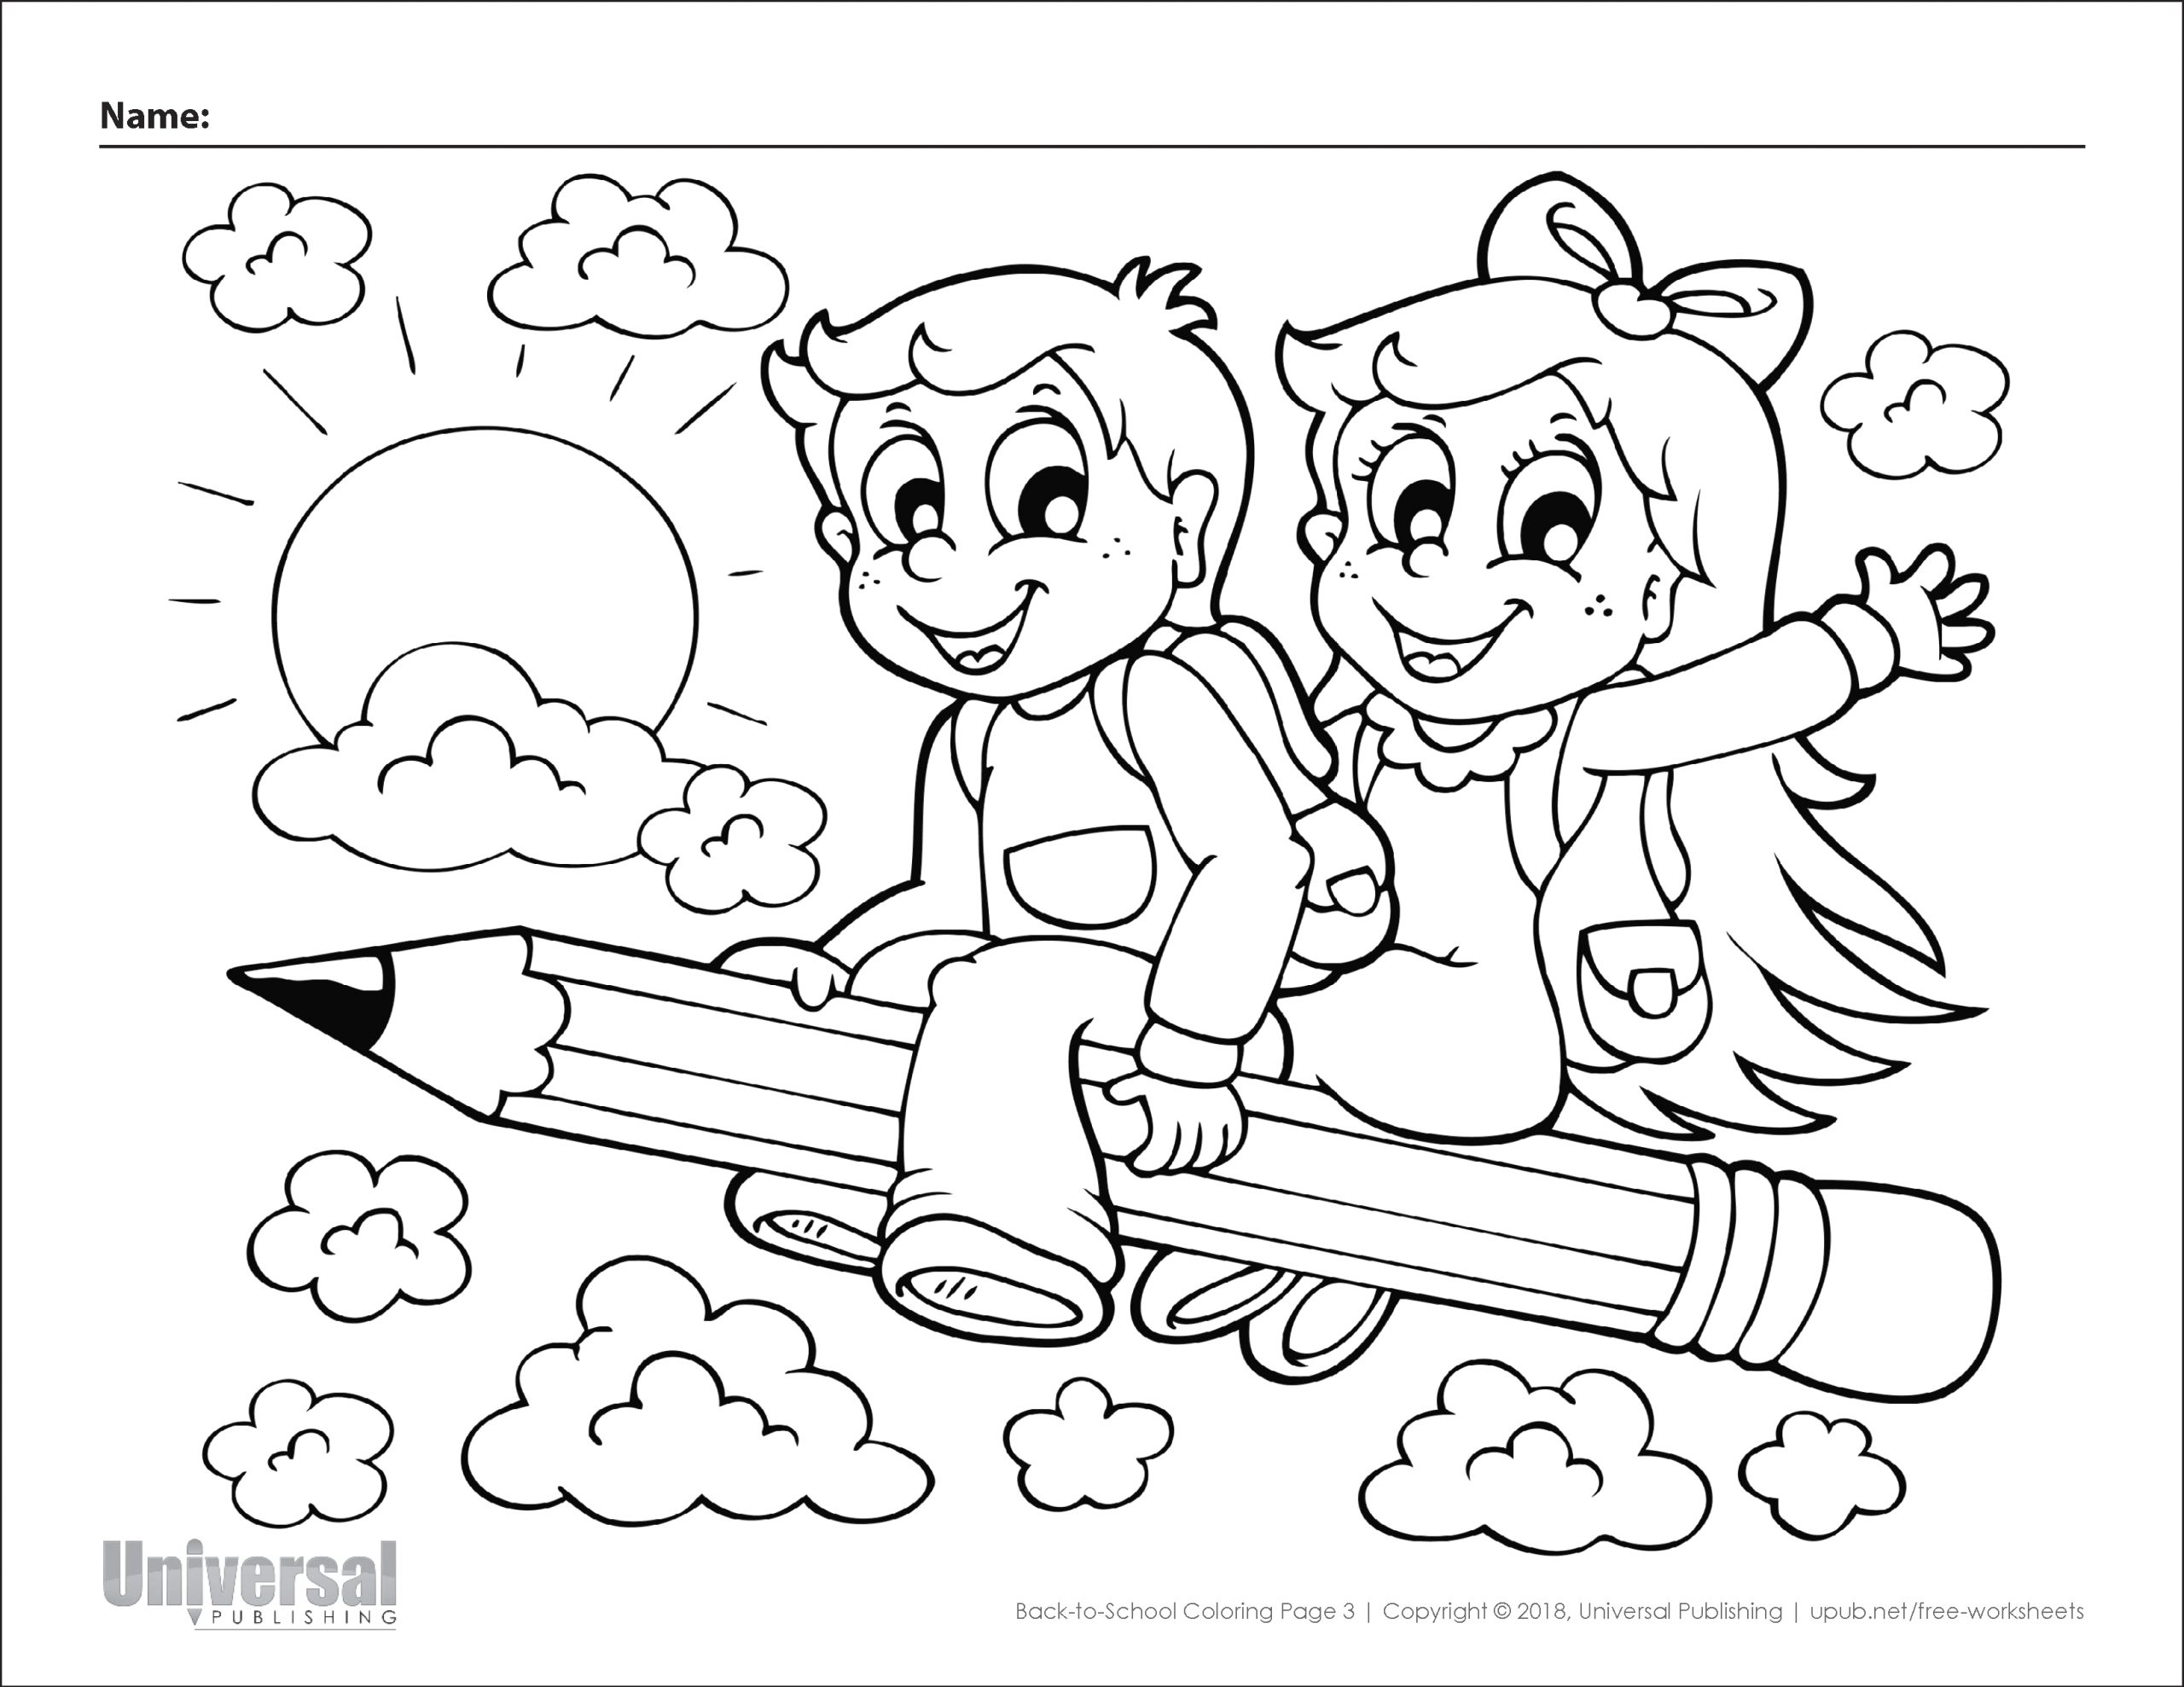 Free Printable Back to School Coloring Pages for Preschoolers Back to School Coloring Pages